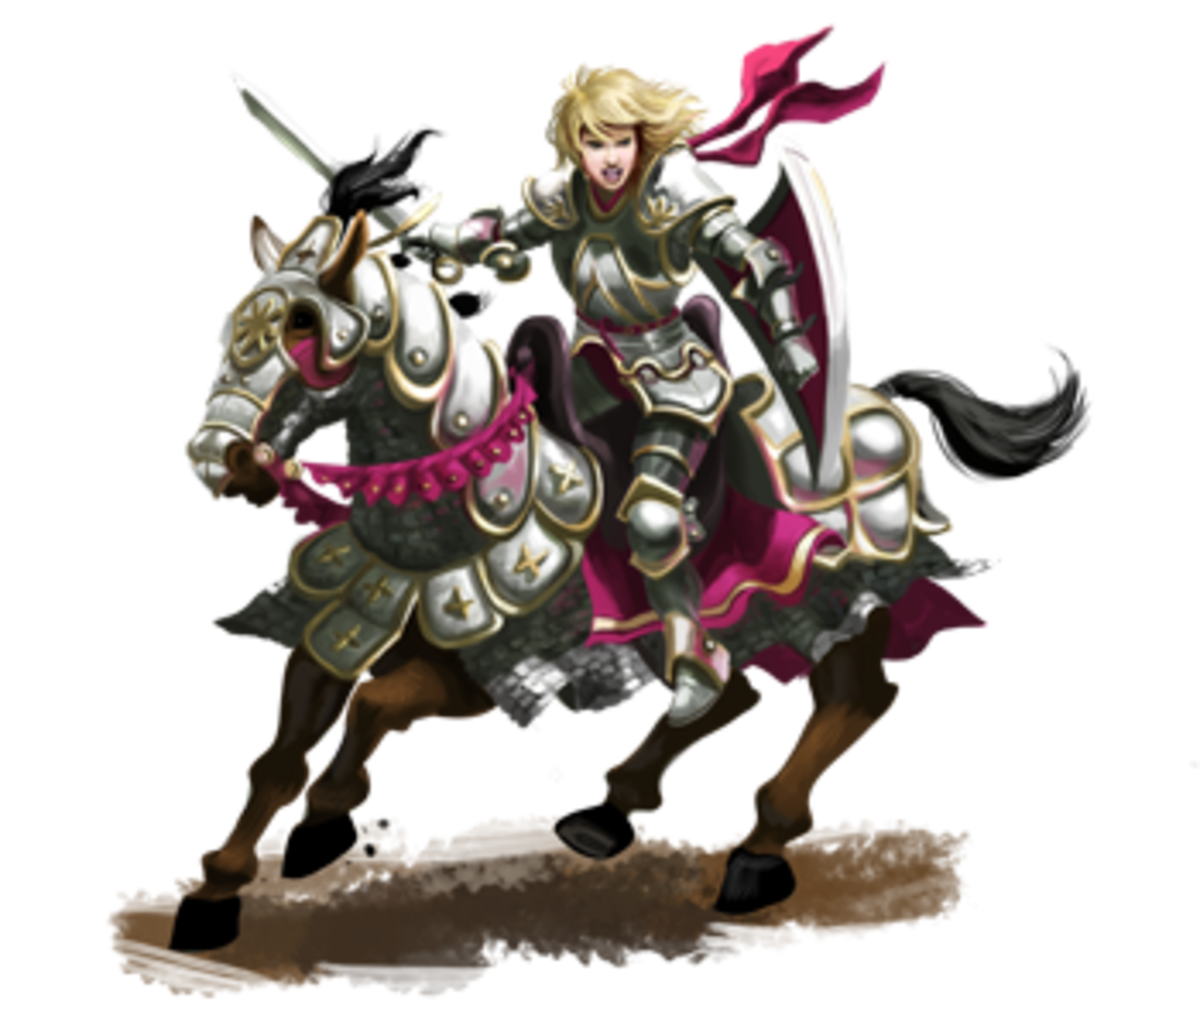 Let's buck the trend and play a female knight, eh?